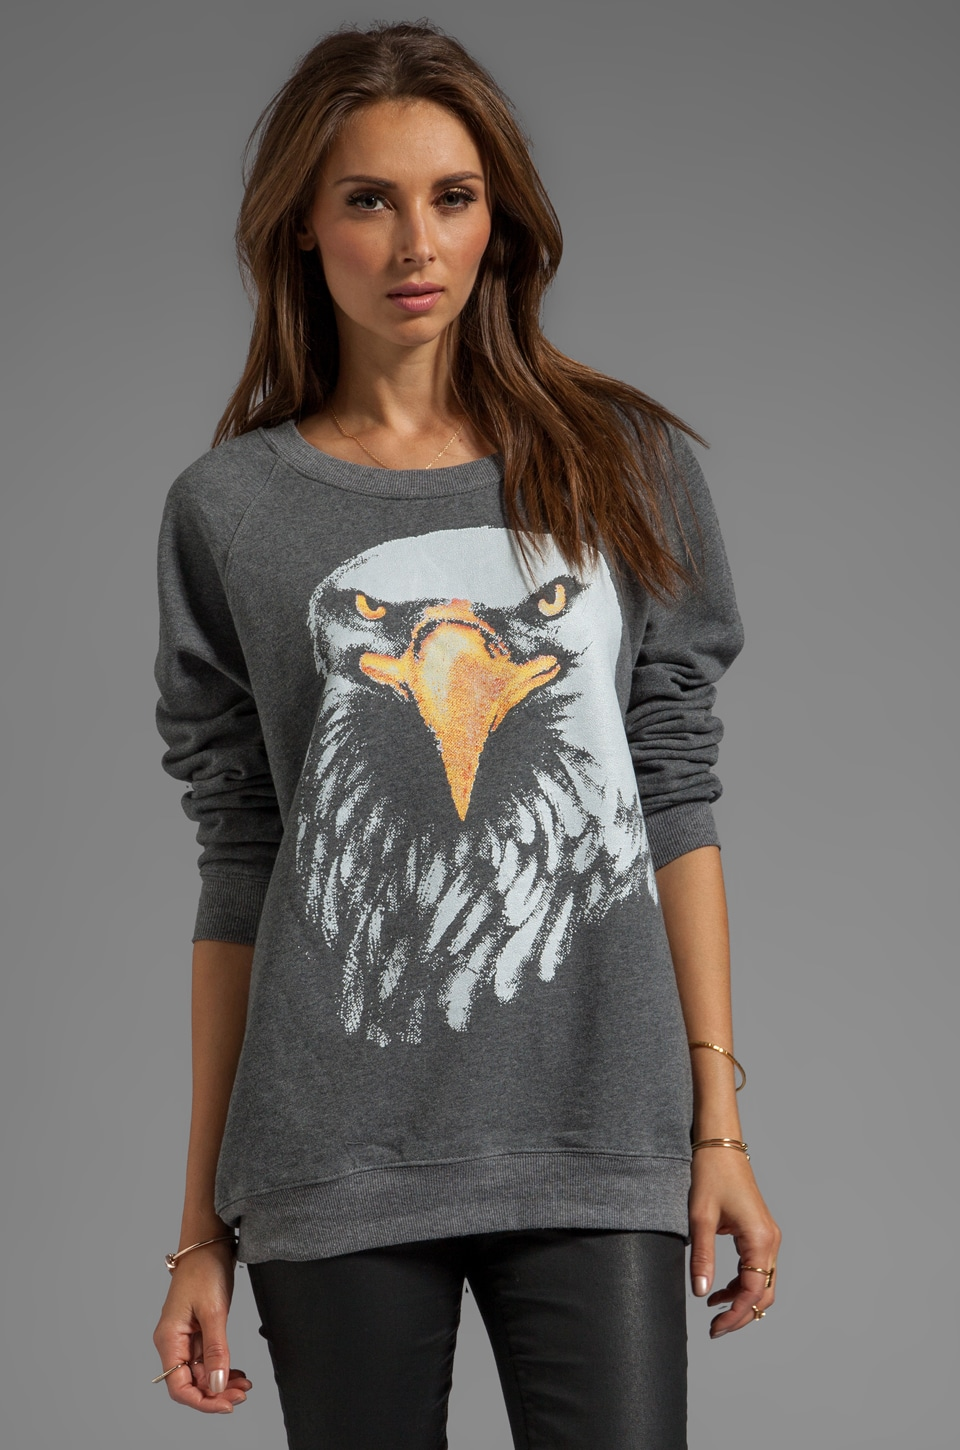 MINKPINK Like a Hawk Pullover Sweater in Charcoal